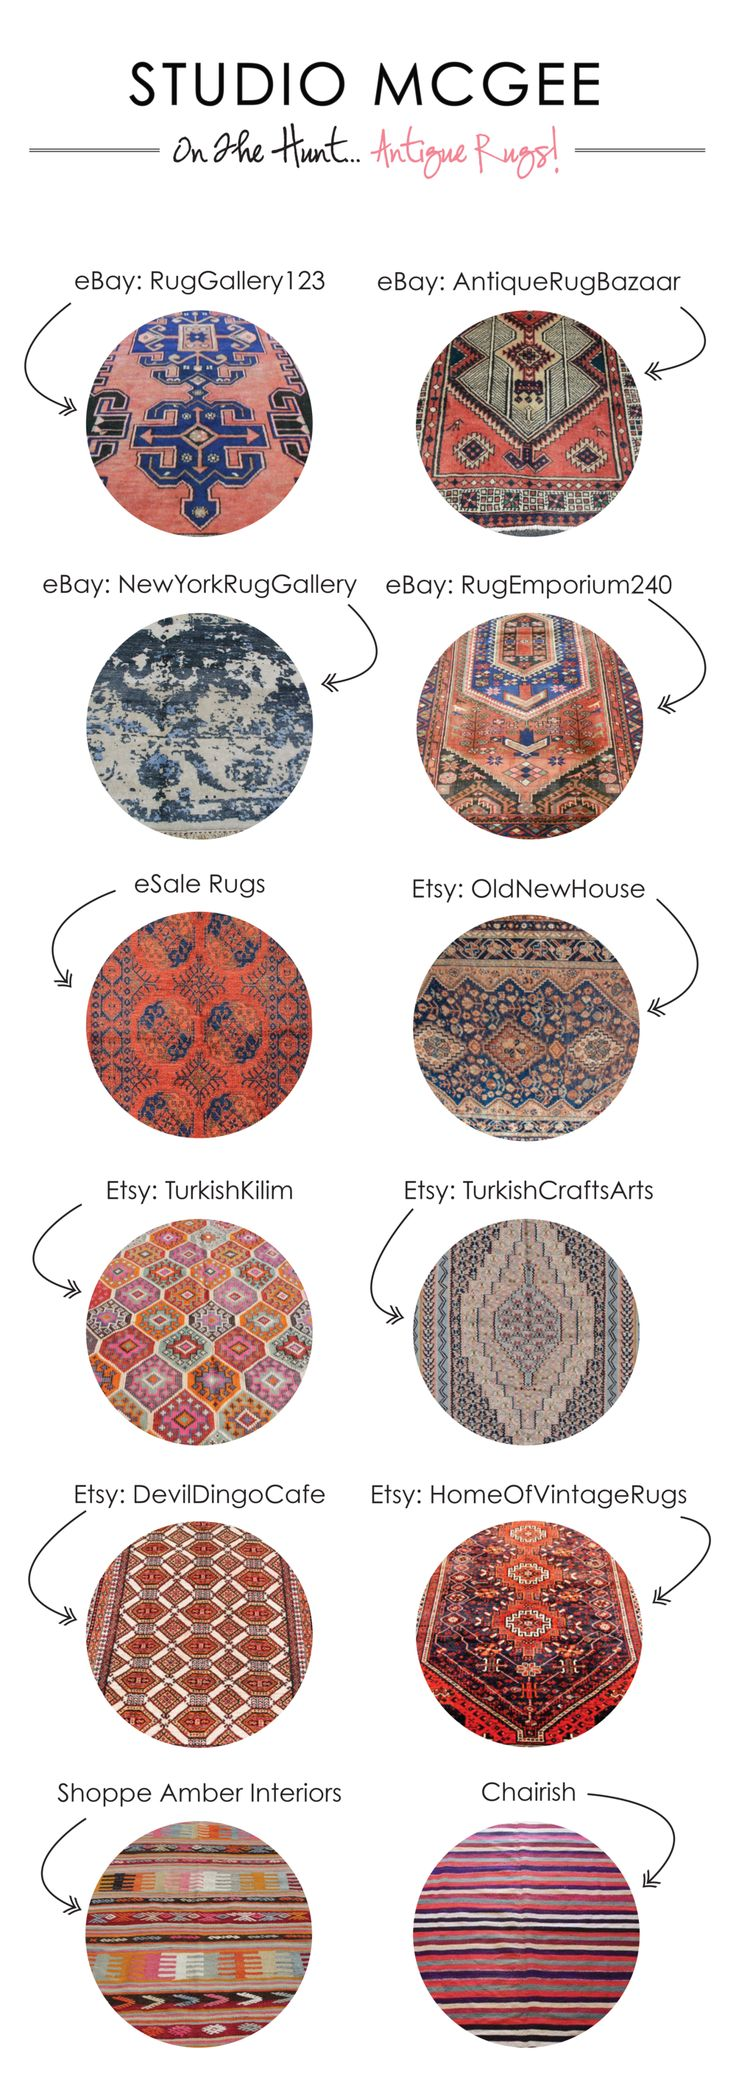 Sourcing Antique Rugs